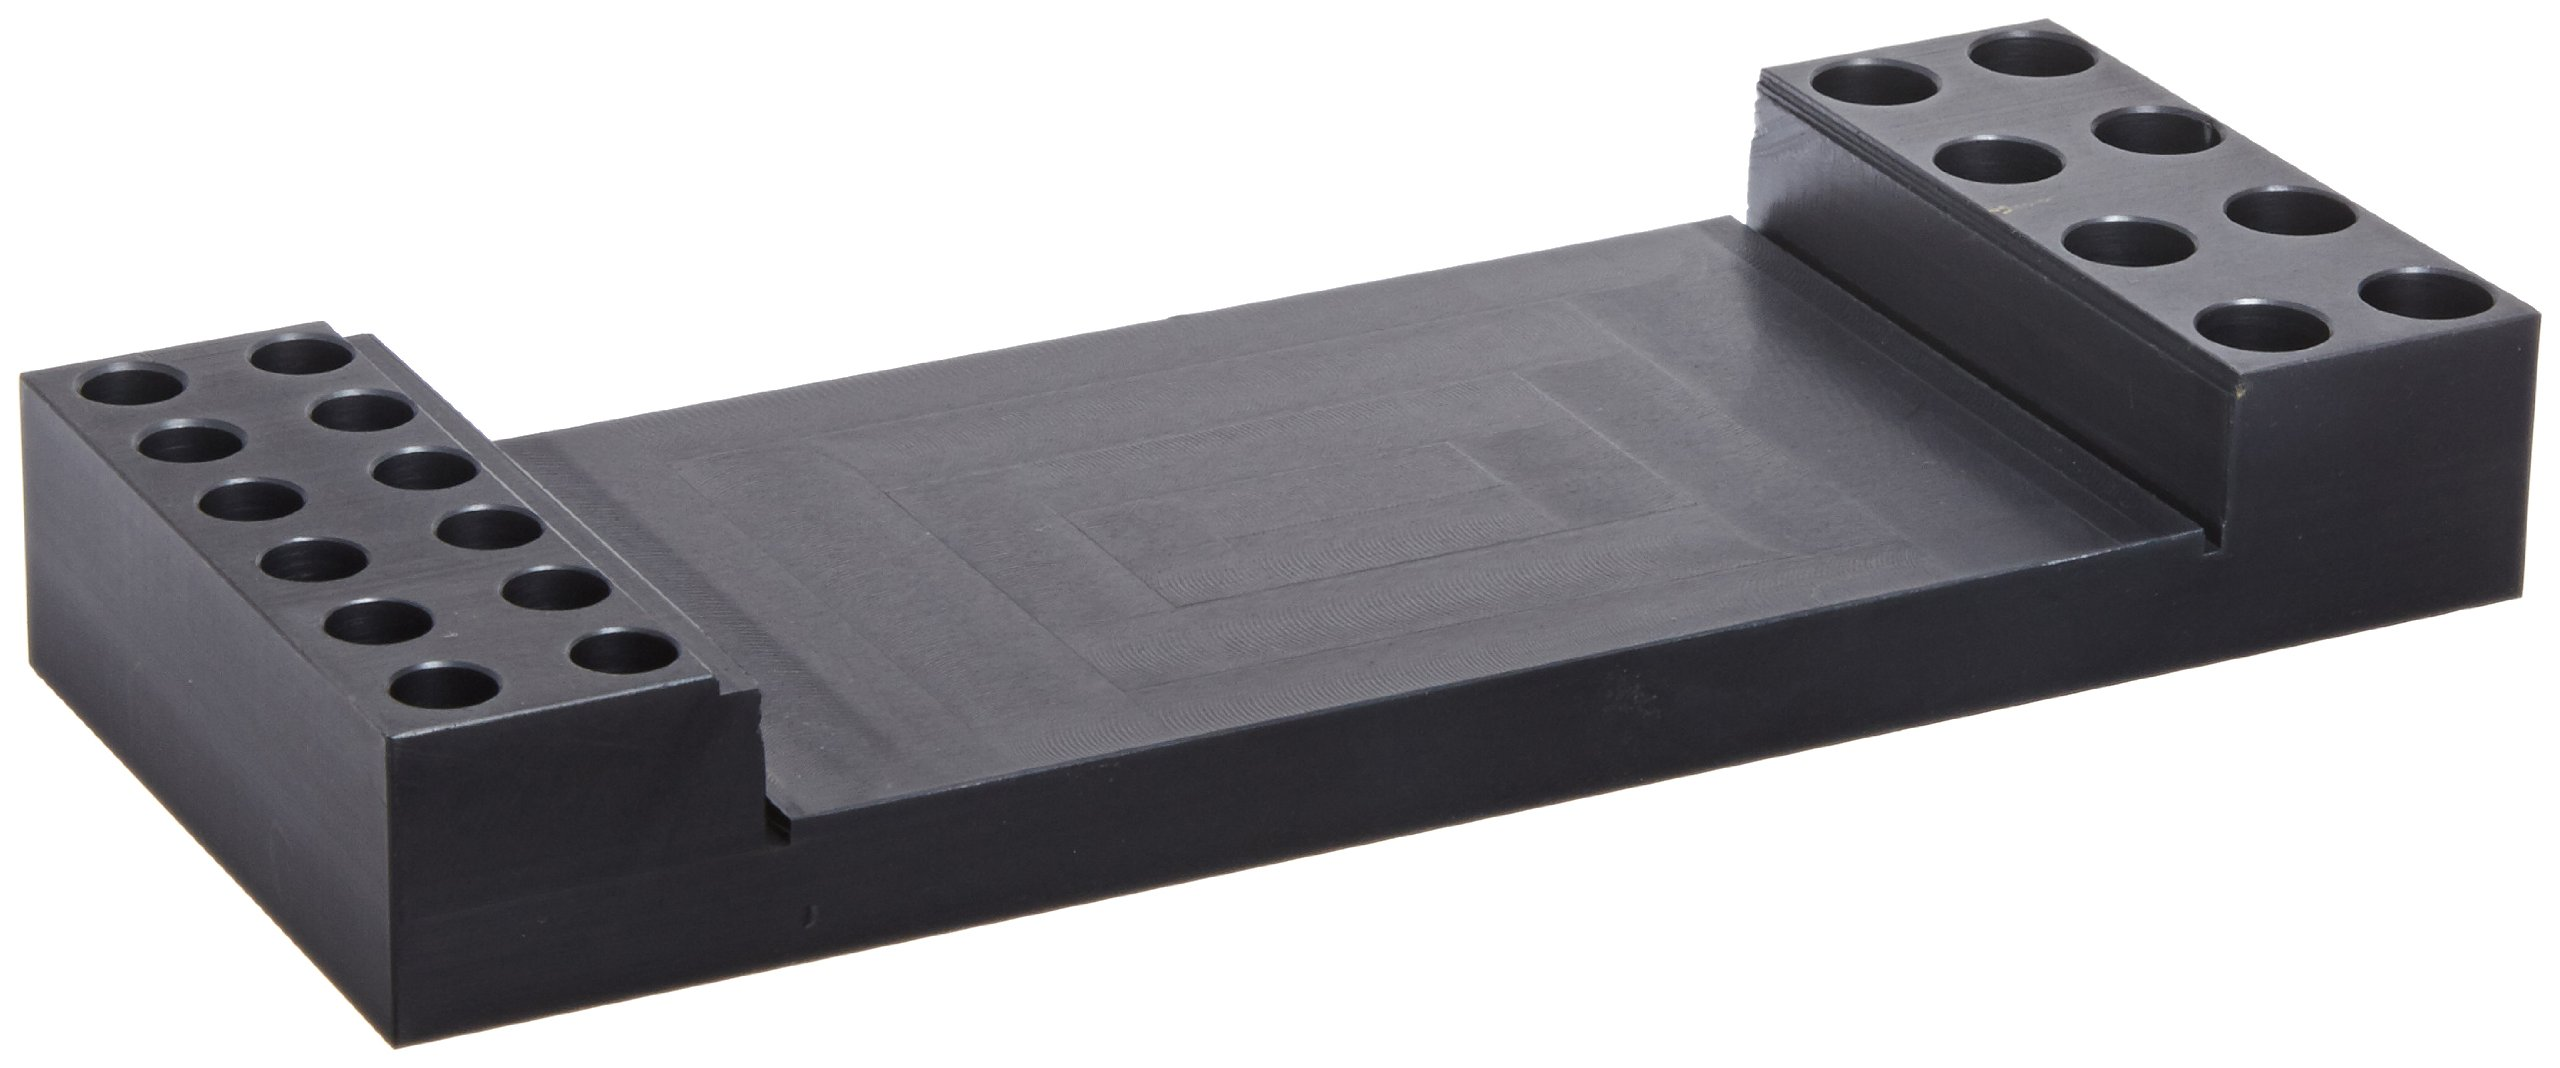 Chemglass CLS-3508-01 Cool Block for 96 Well Flat Bottom Plate